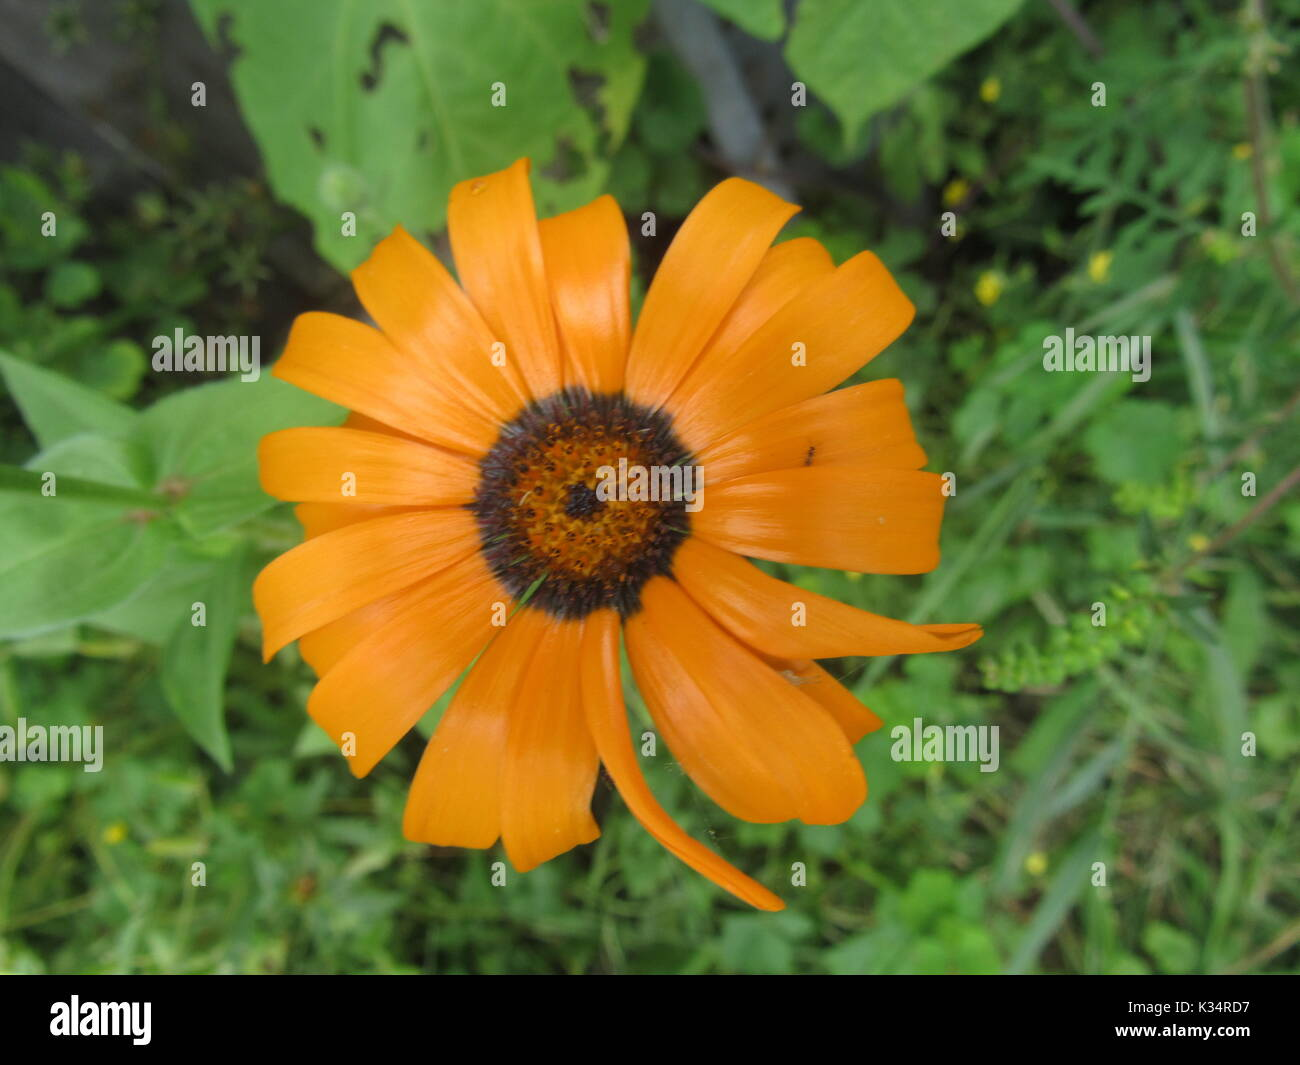 Easy To Grow Garden Flowers In Various Colors And Types Daisy Type